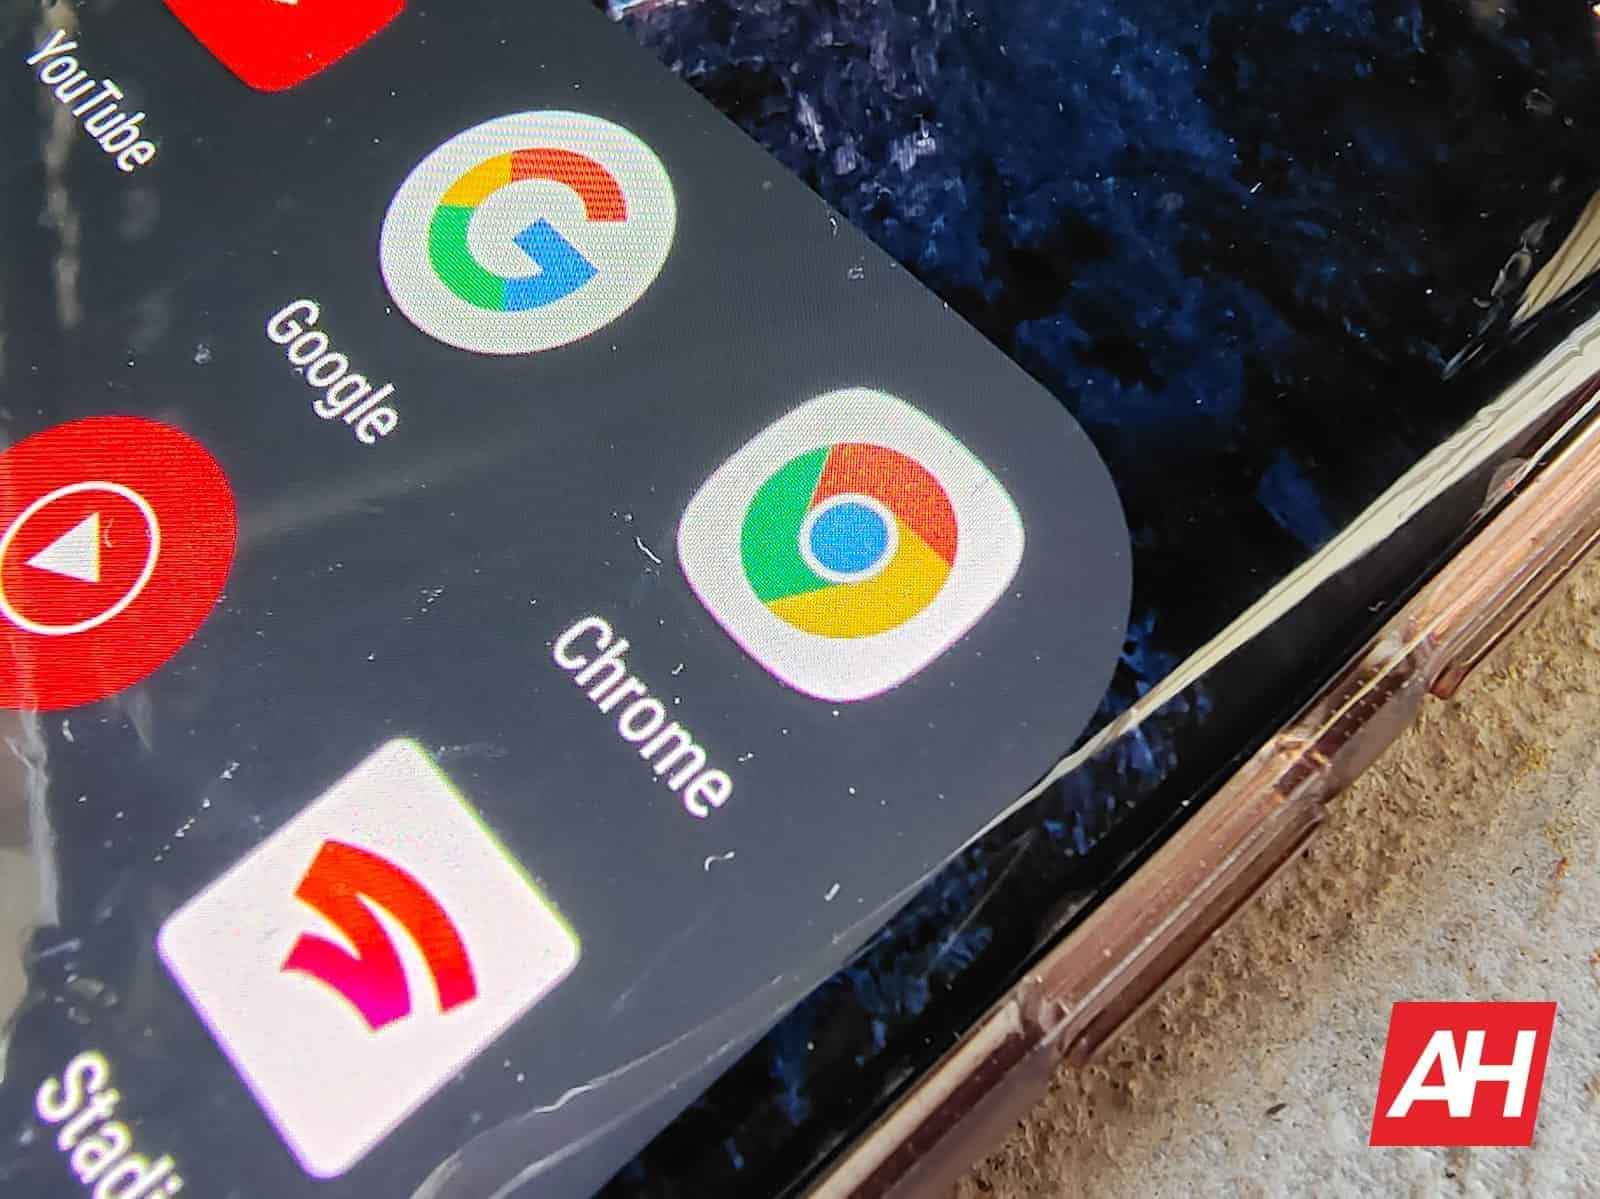 Chrome 91 Update Fixes Android Tablet Issue, Desktop Resource Drain